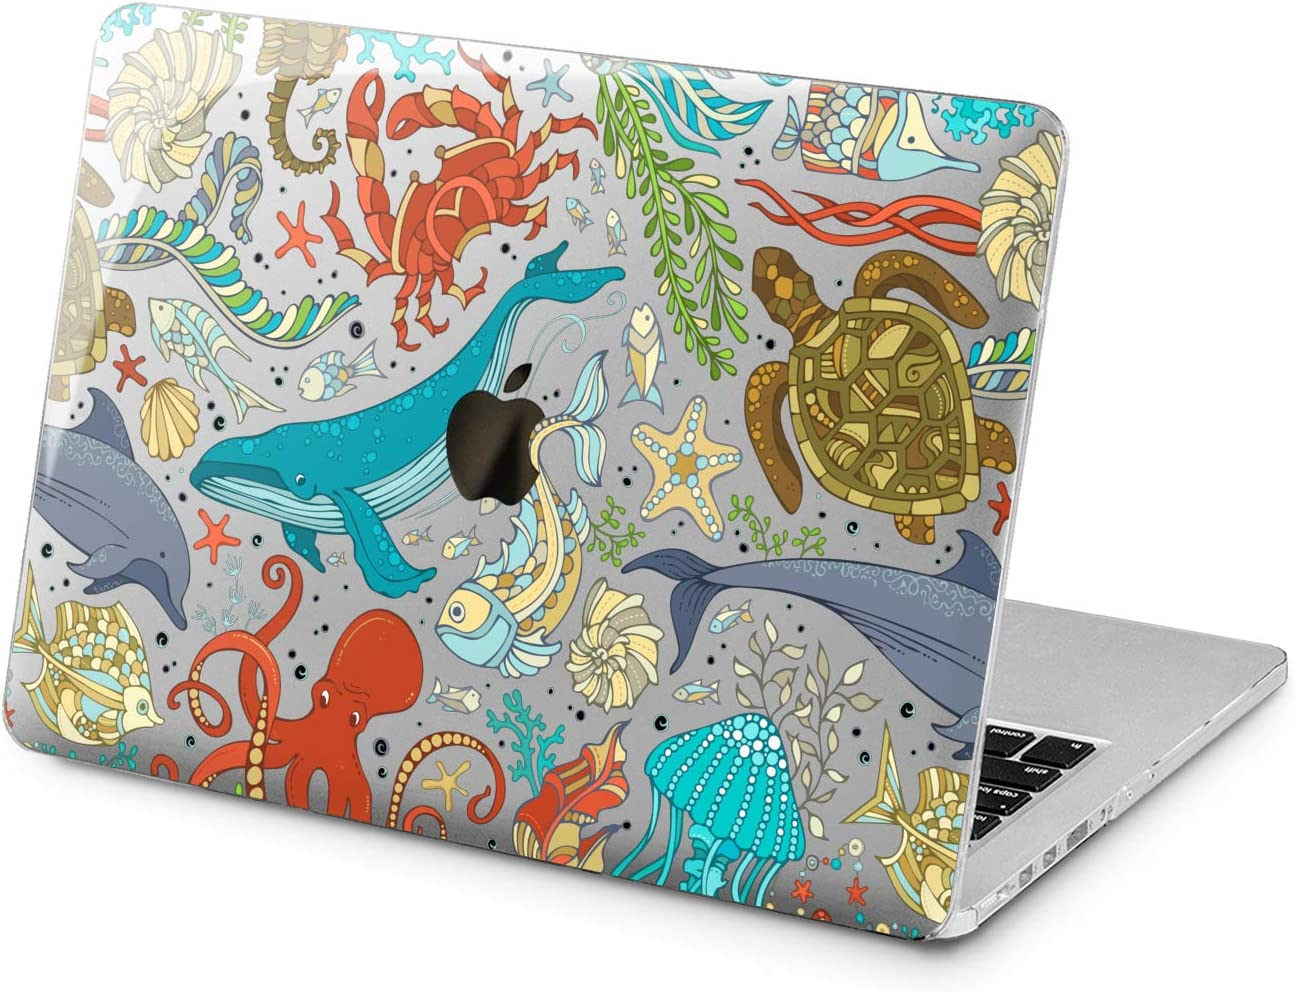 "Cavka Hard Shell Case for Apple MacBook Pro 13"" 2019 15"" 2018 Air 13"" 2020 Retina 2015 Mac 11"" Mac 12"" Underwater World Cute Ocean Fish Plastic Design Turtle Whale Cover Nice Print Laptop Protective"